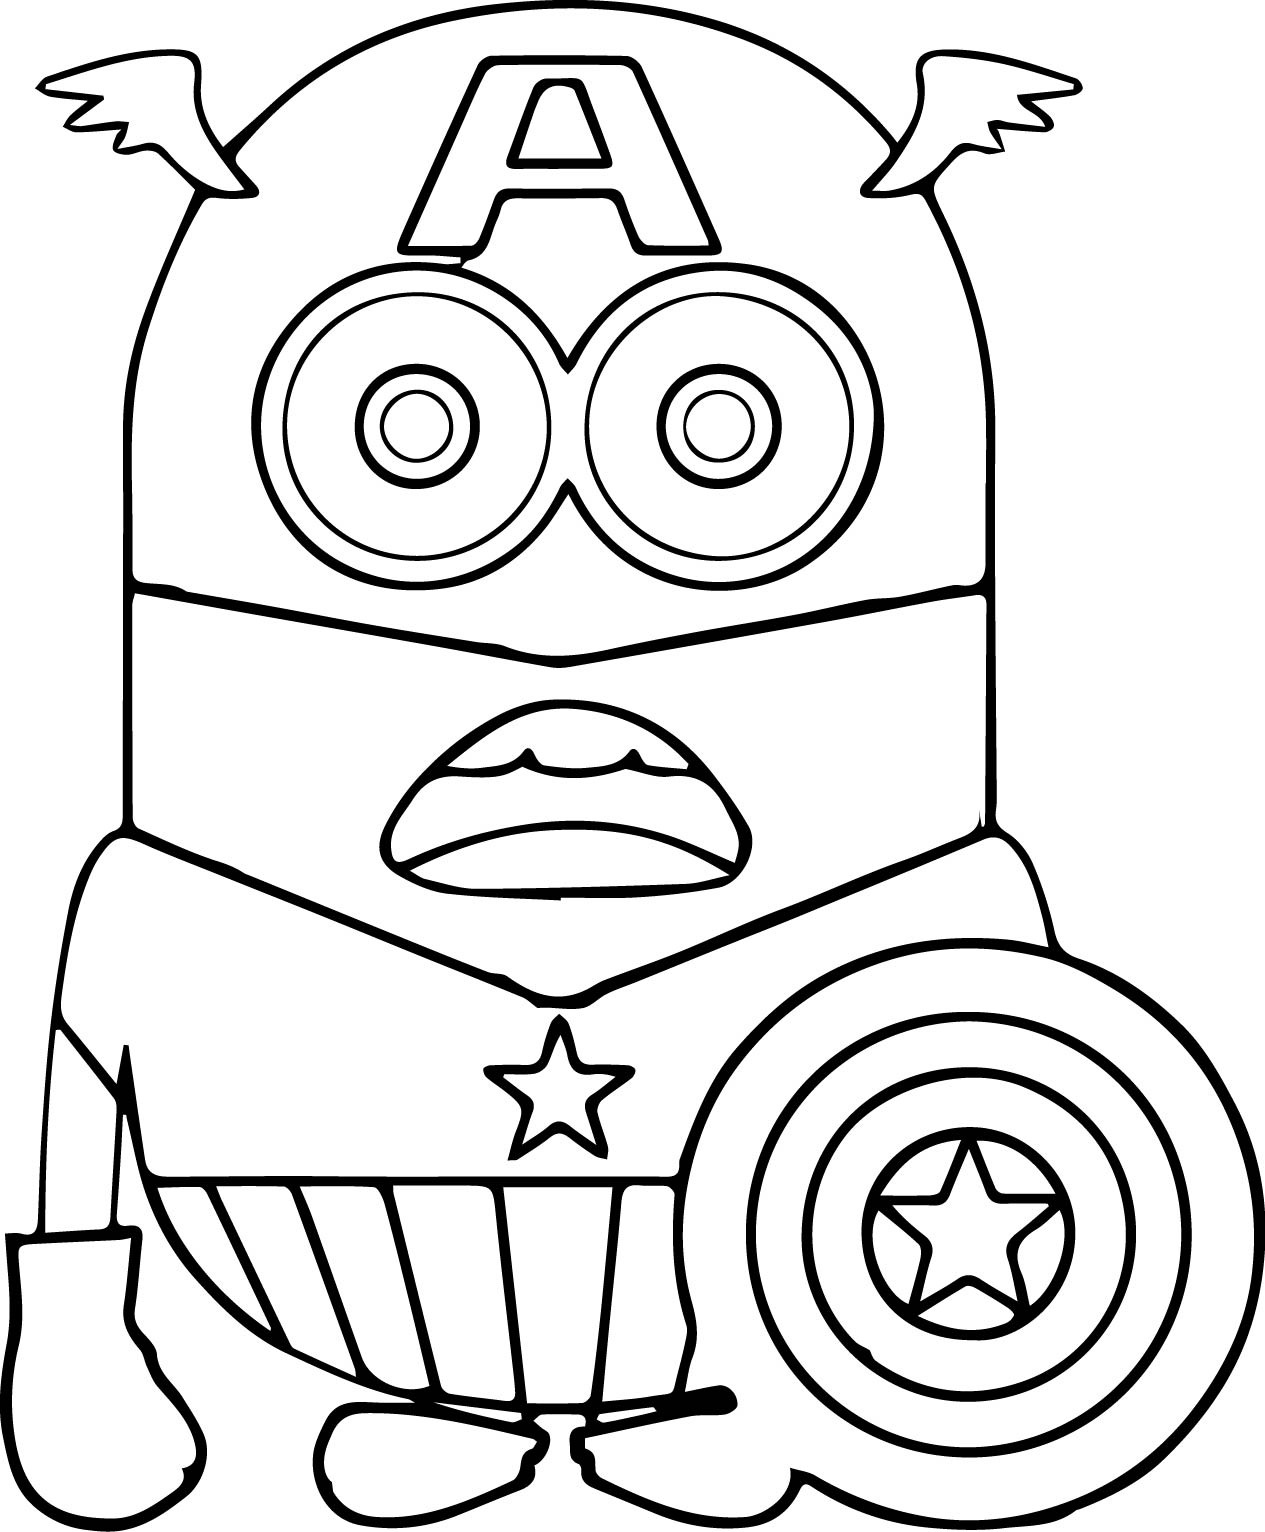 Christmas Minion Coloring Pages With Bob Download Free Books